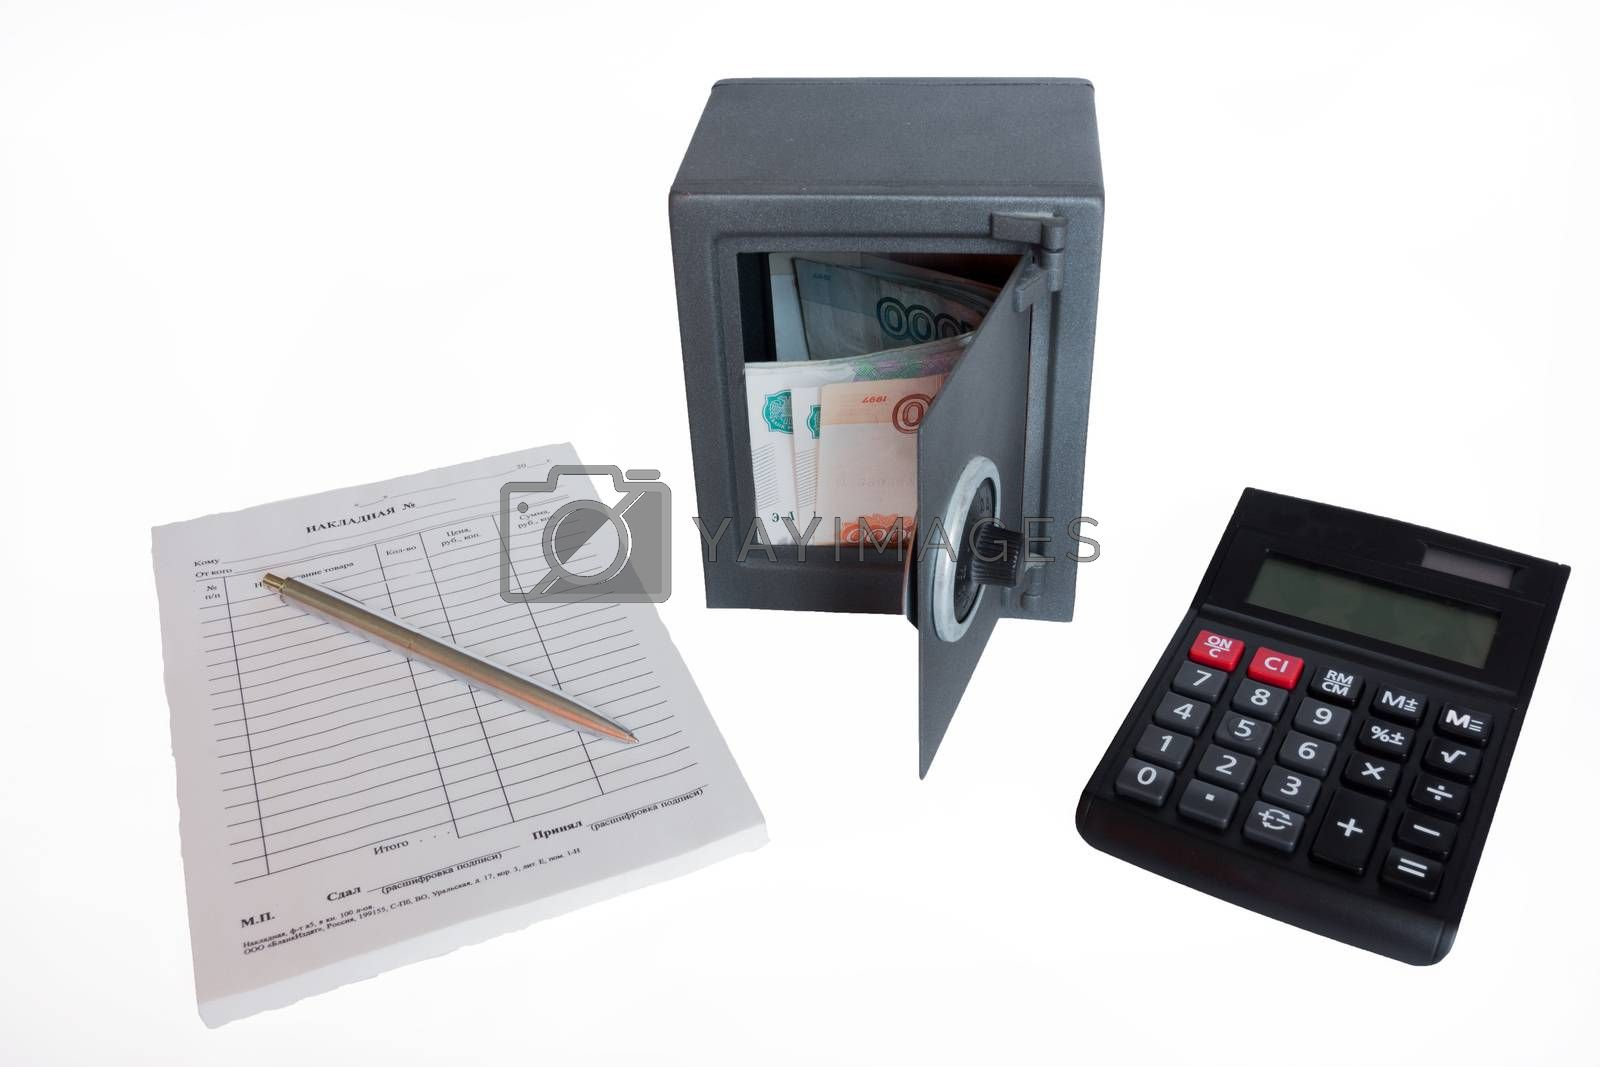 The photo depicts a safe with money and documents.